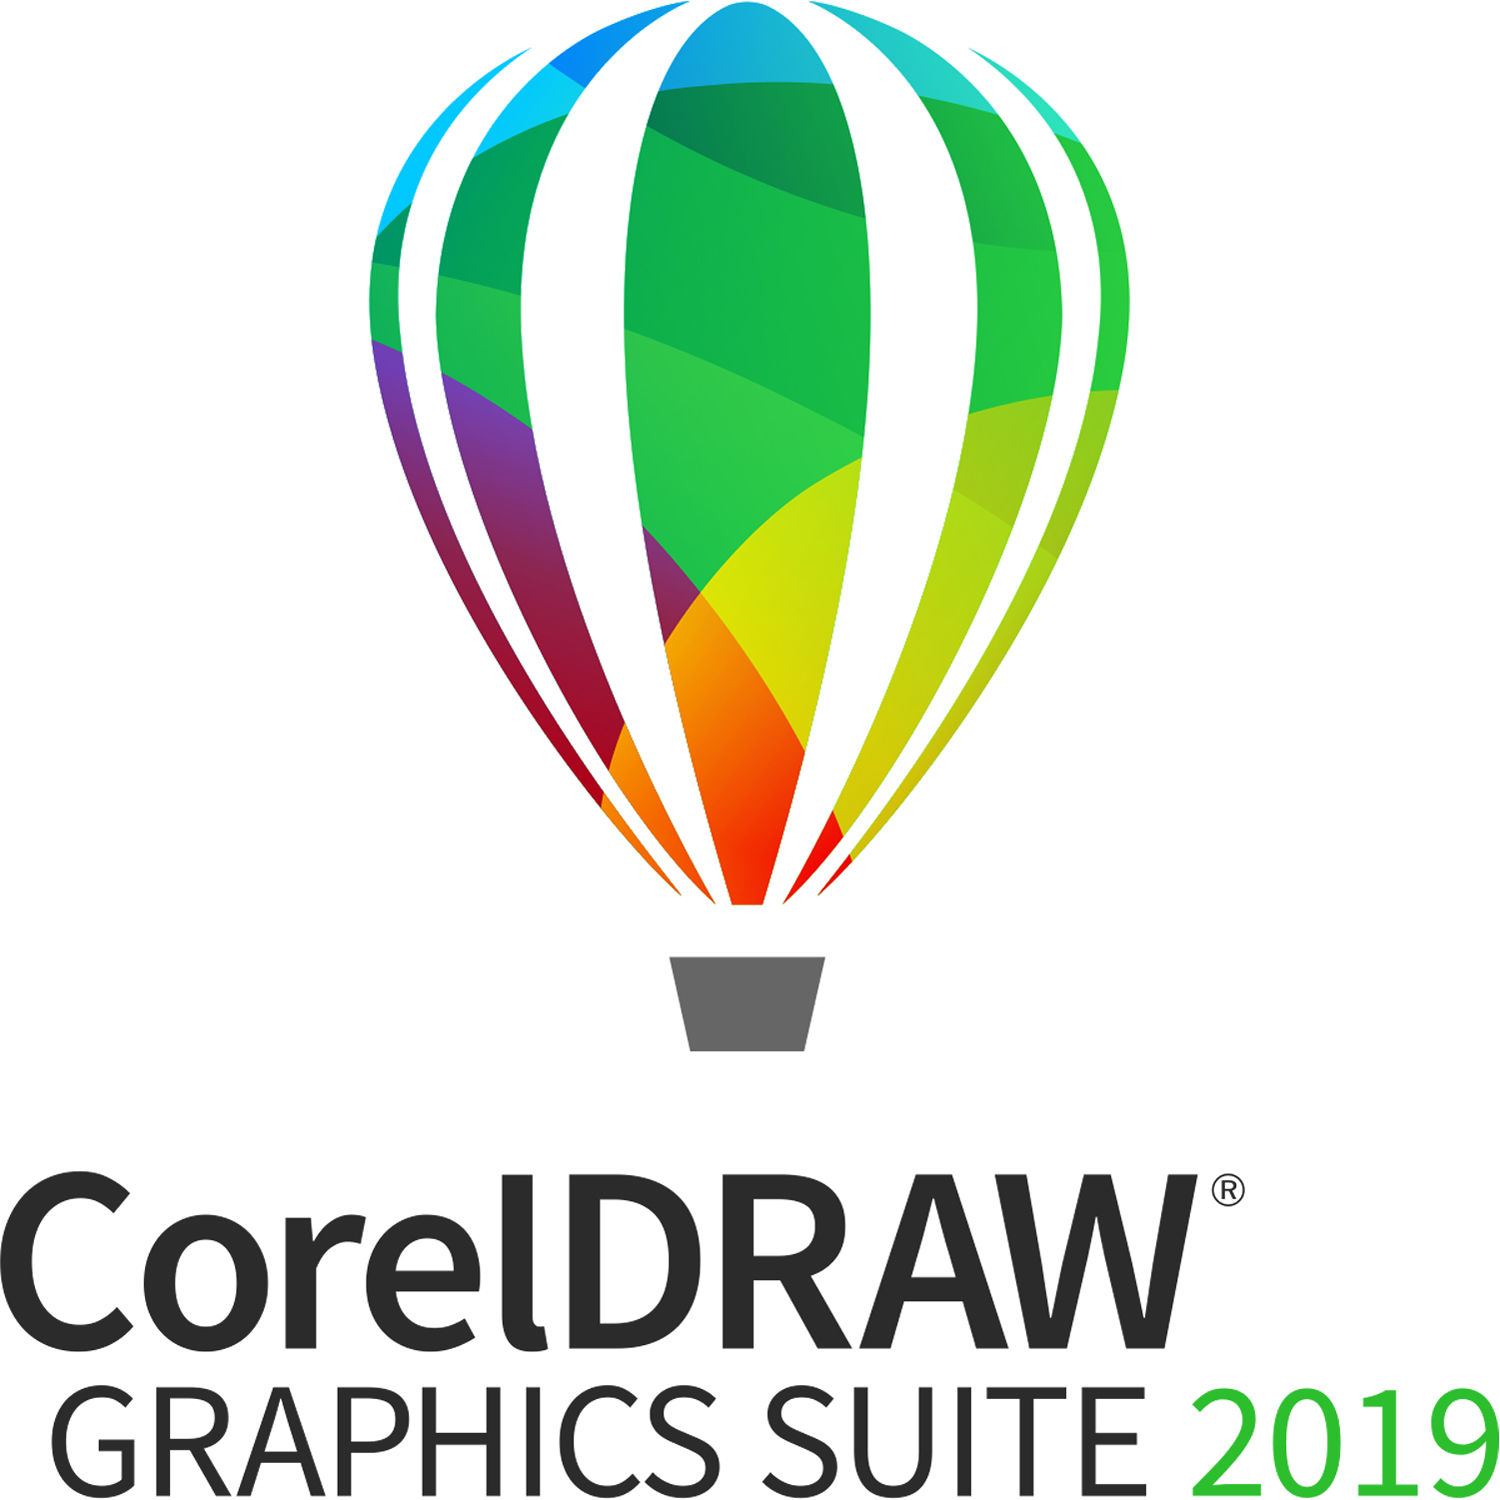 Corel Draw 2019 Suite for advanced Graphic Design projects and Large format Printer applications